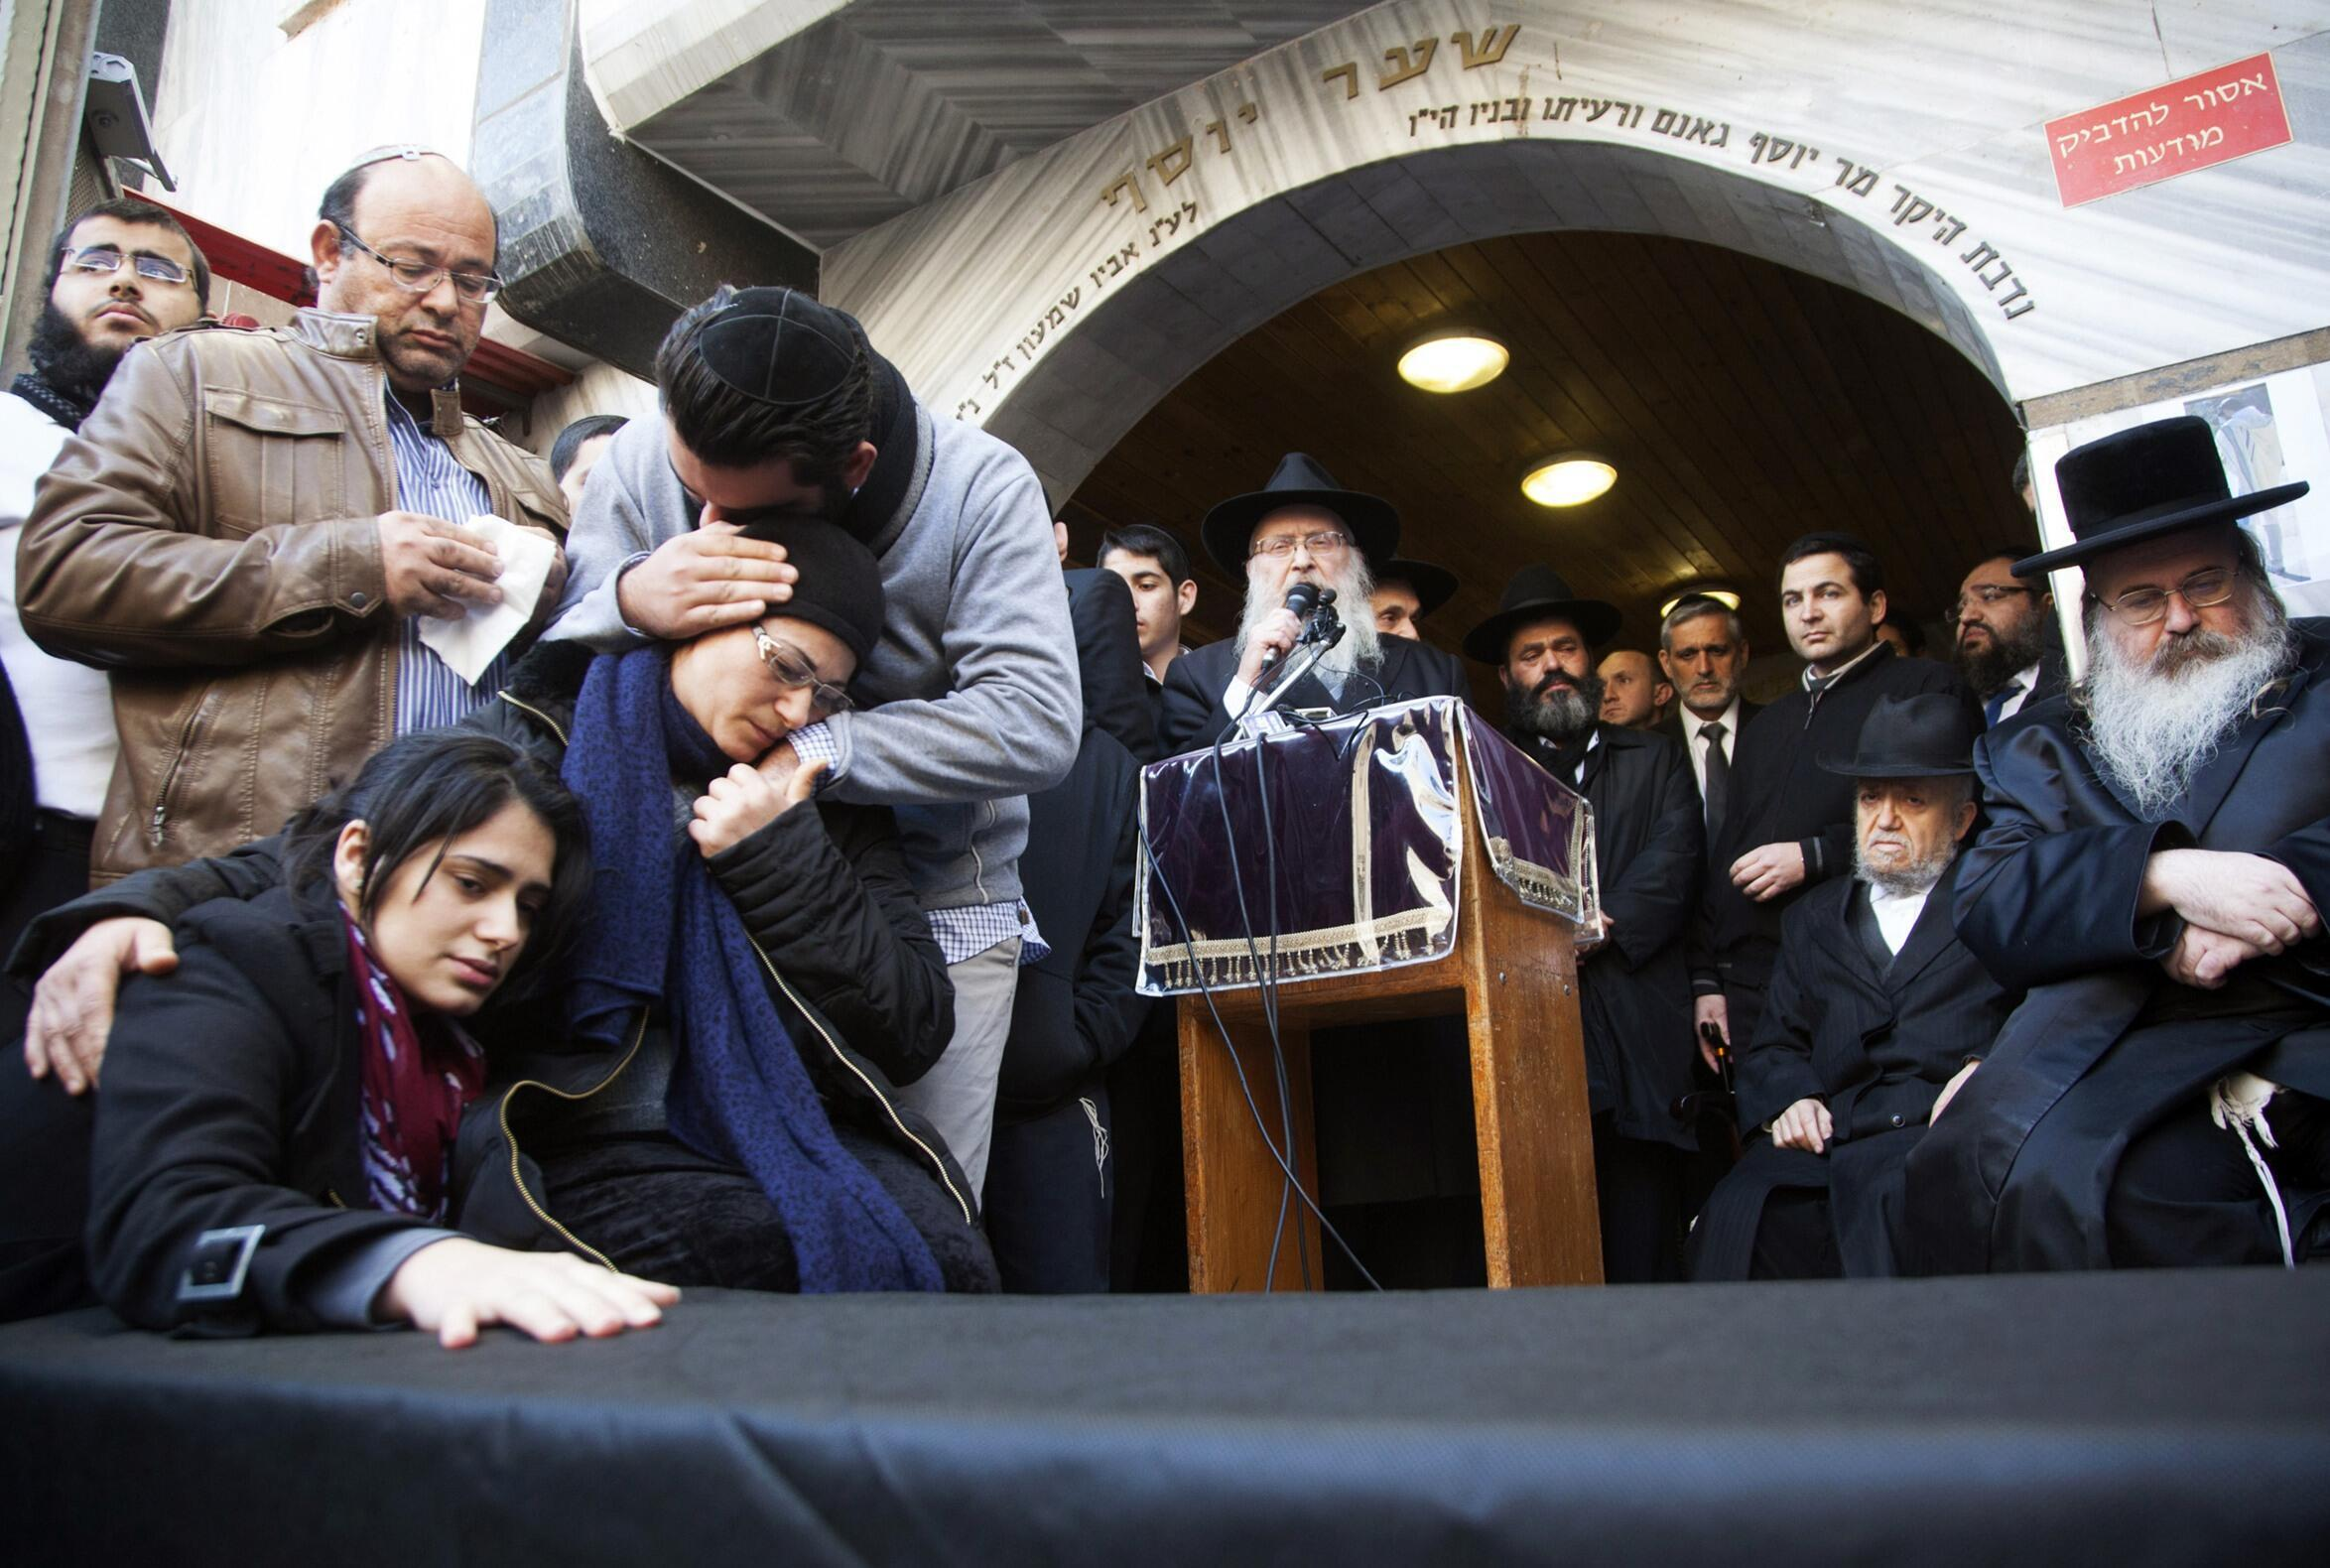 The funeral of the Hyper Cacher siege victims in Jerusalem